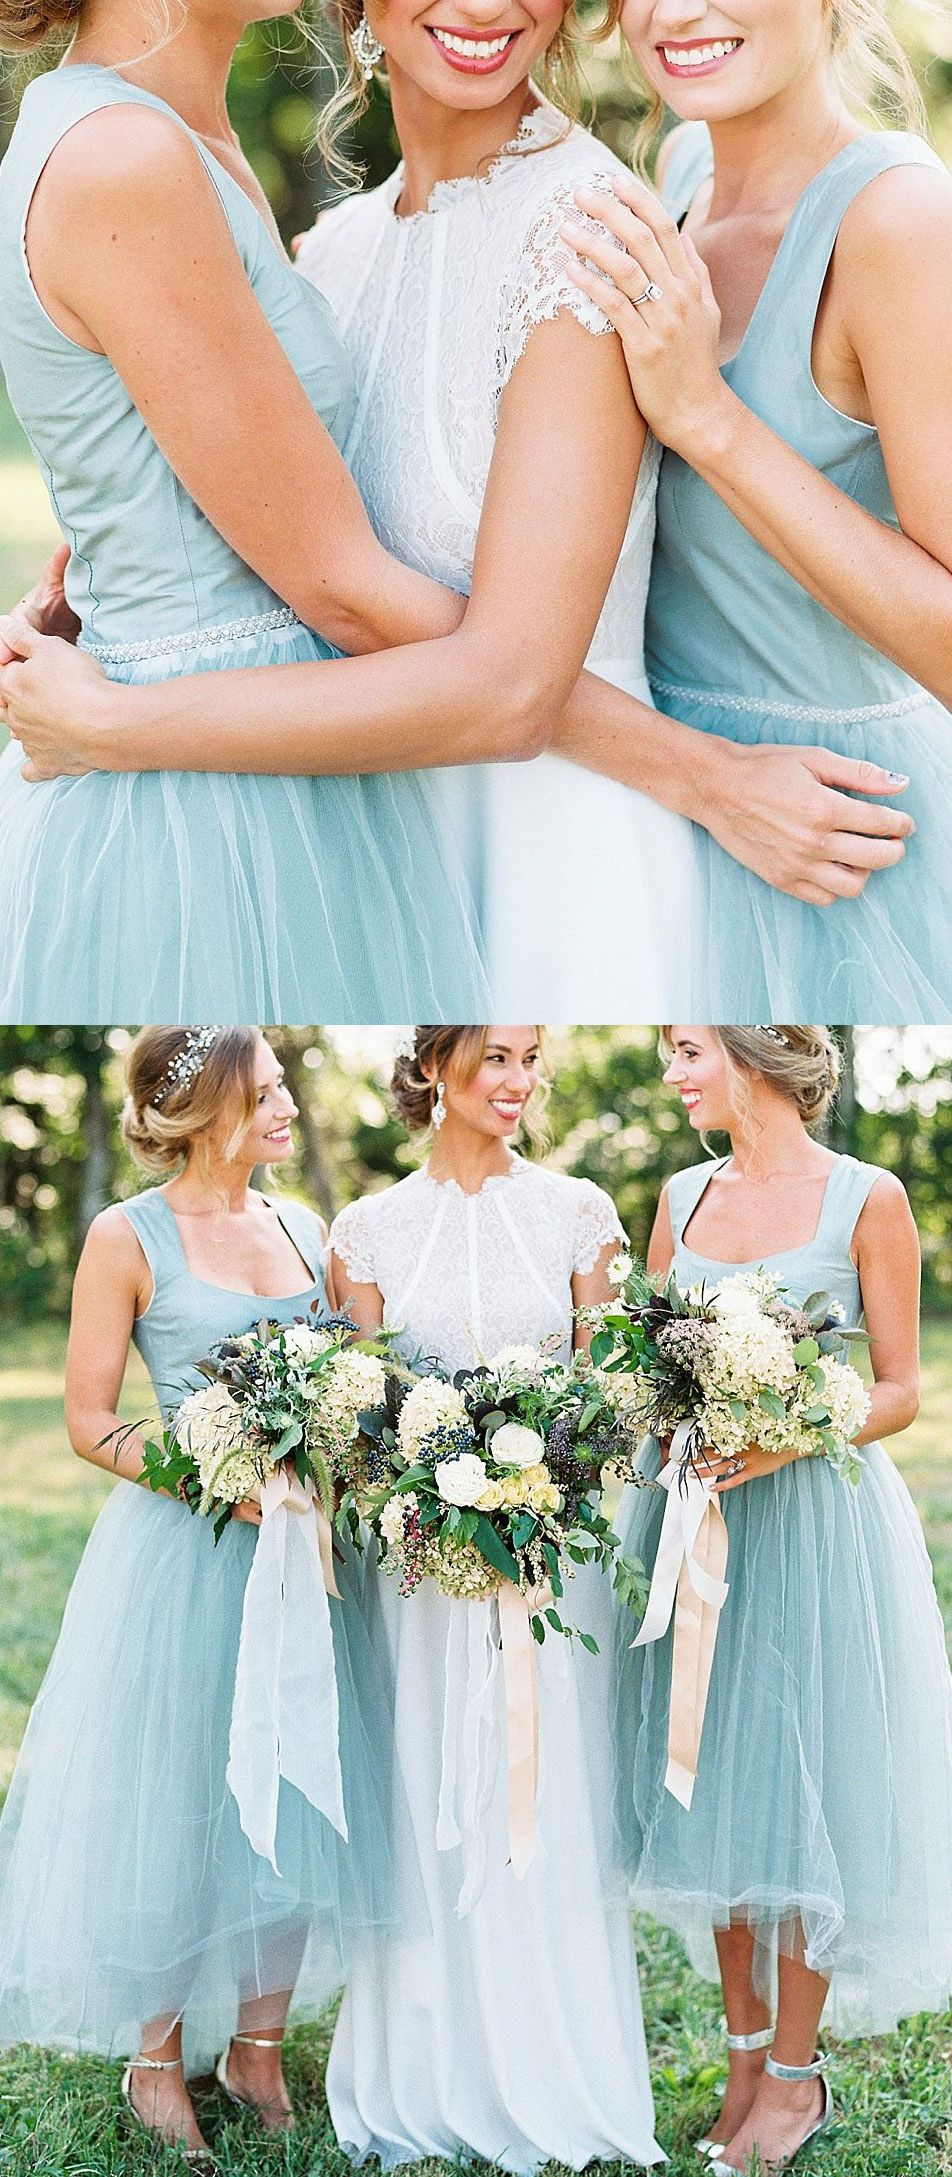 Long bridesmaid dresses tulle bridesmaid dresses discount long bridesmaid dresses tulle bridesmaid dresses discount bridesmaid dresses light blue bridesmaid dresses ombrellifo Gallery